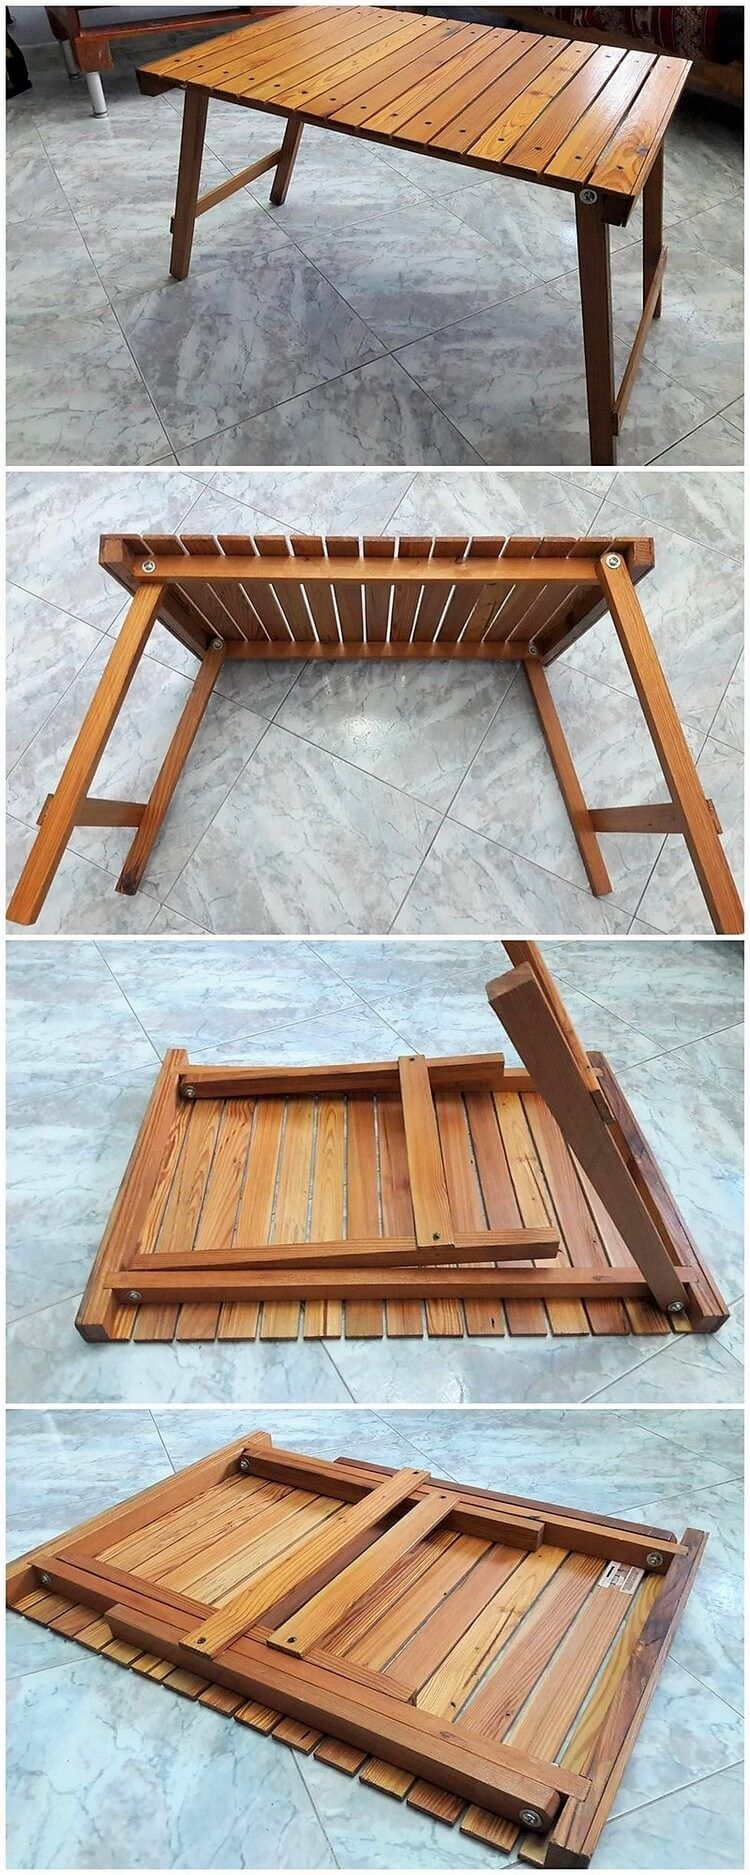 Mesas De Madera Para Camping Exciting Ways To Make Useful Things With Old Wooden Pallets